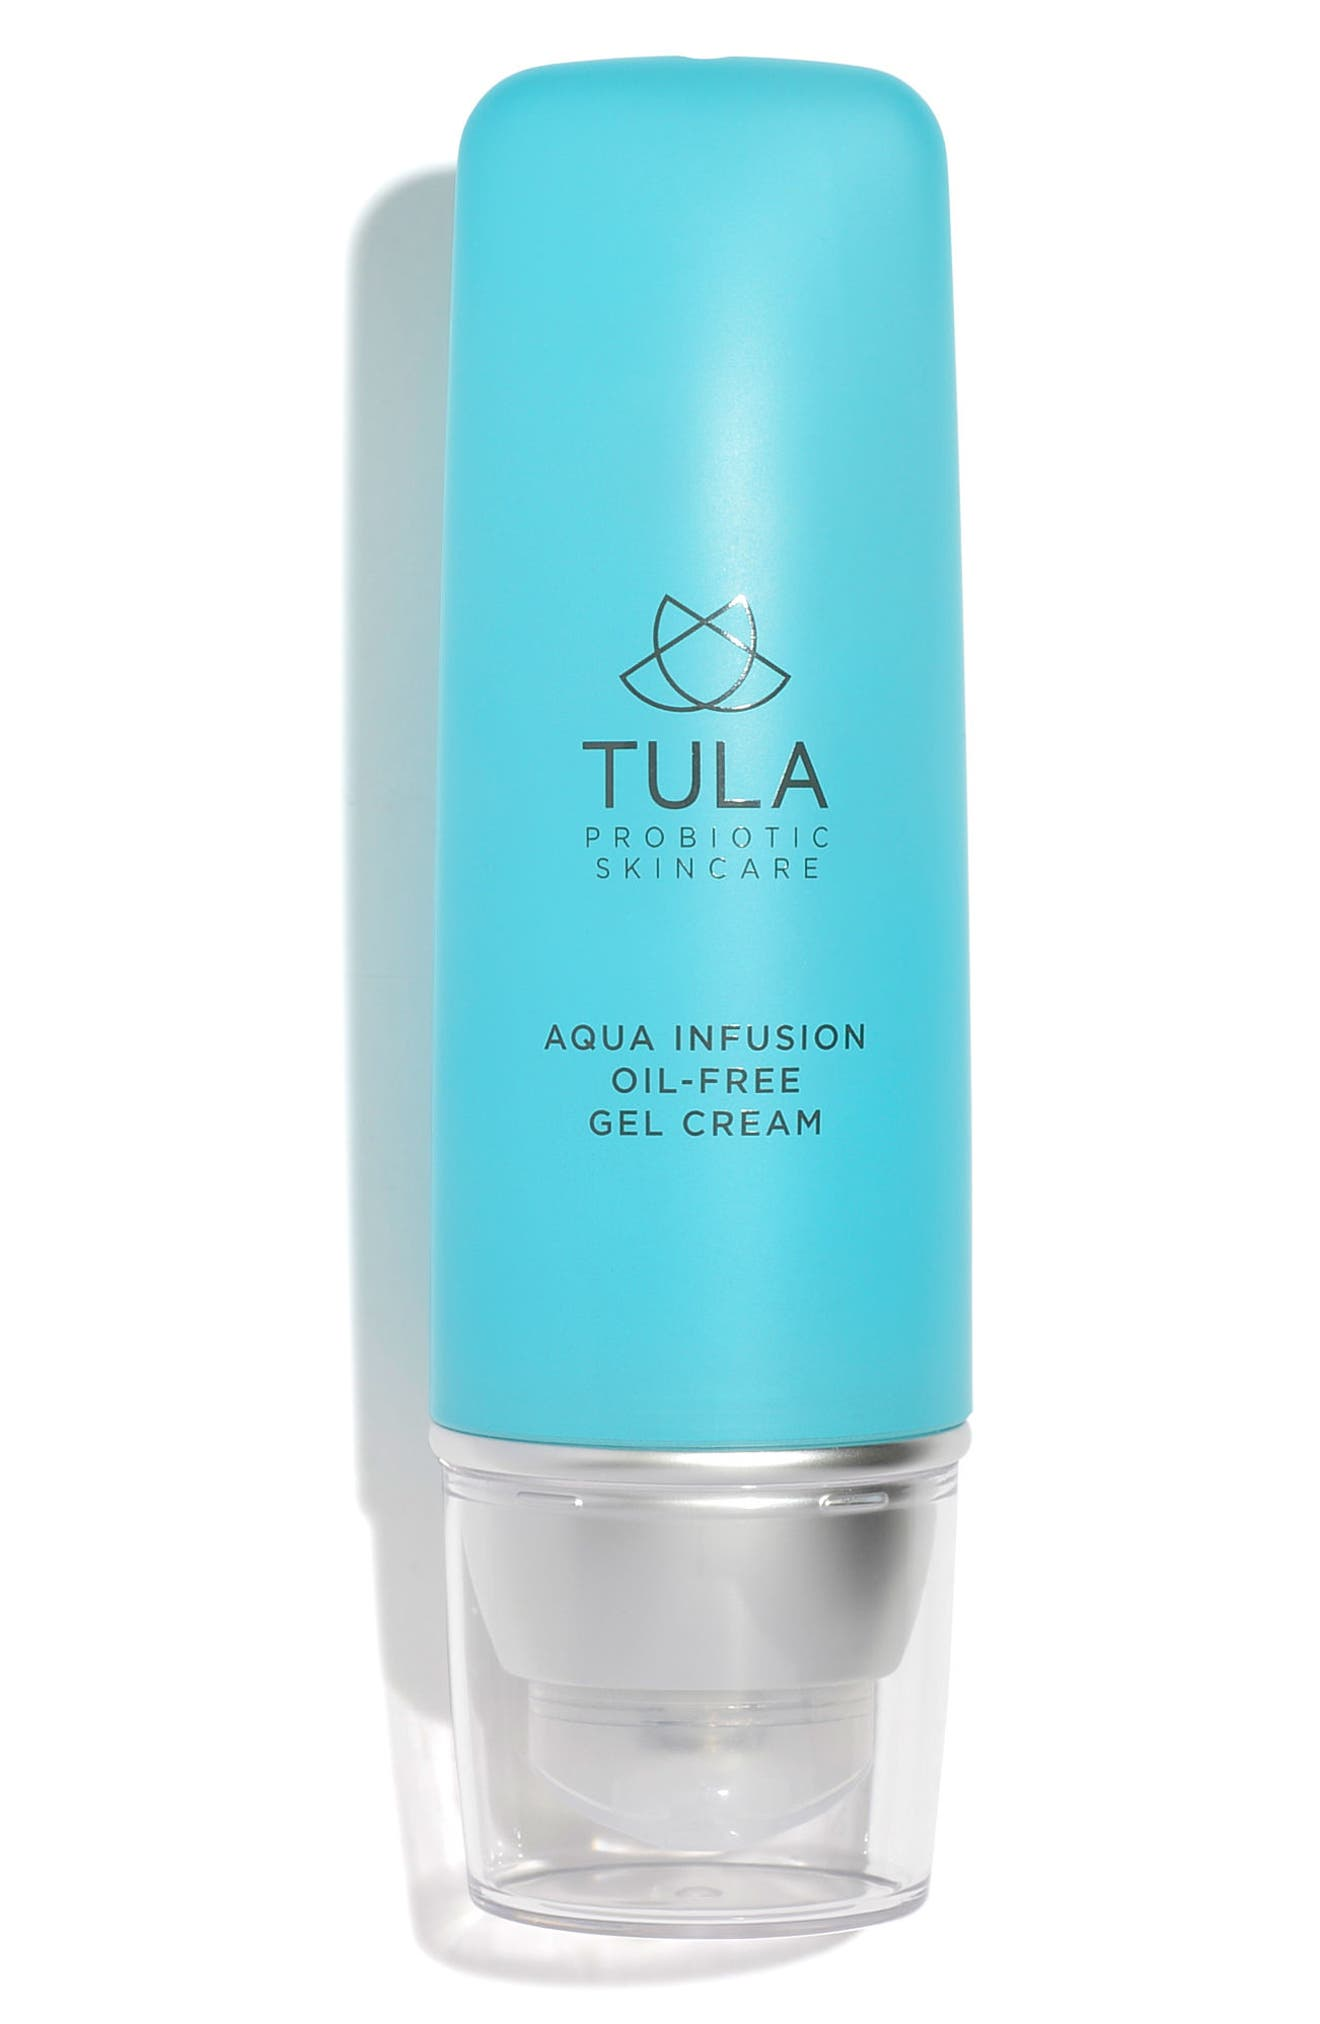 Alternate Image 1 Selected - Tula Probiotic Skincare Aqua Infusion Oil-Free Gel Cream